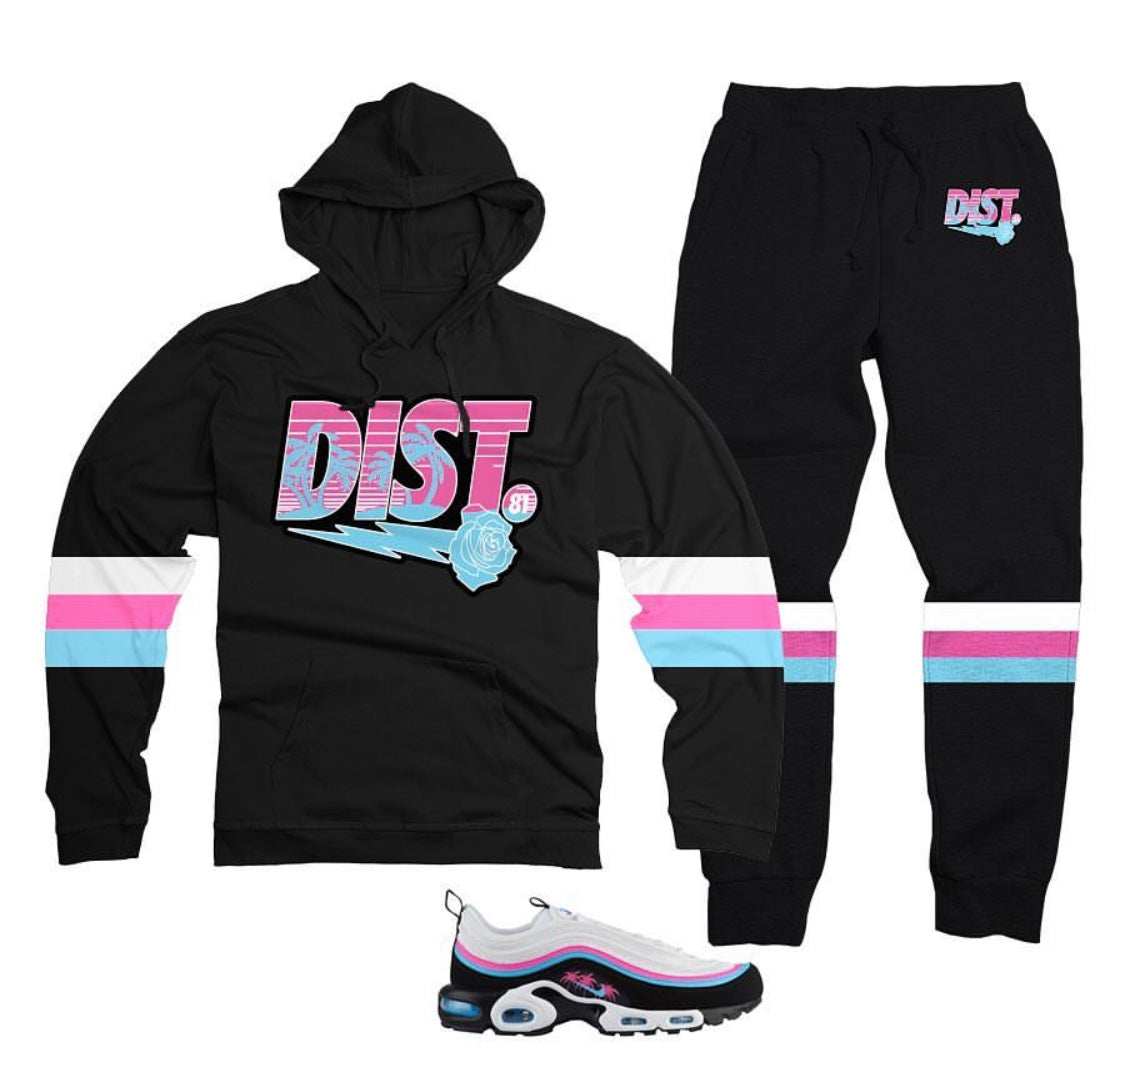 DISTRICT 81 Max Pullover Jogging Suit (Black)